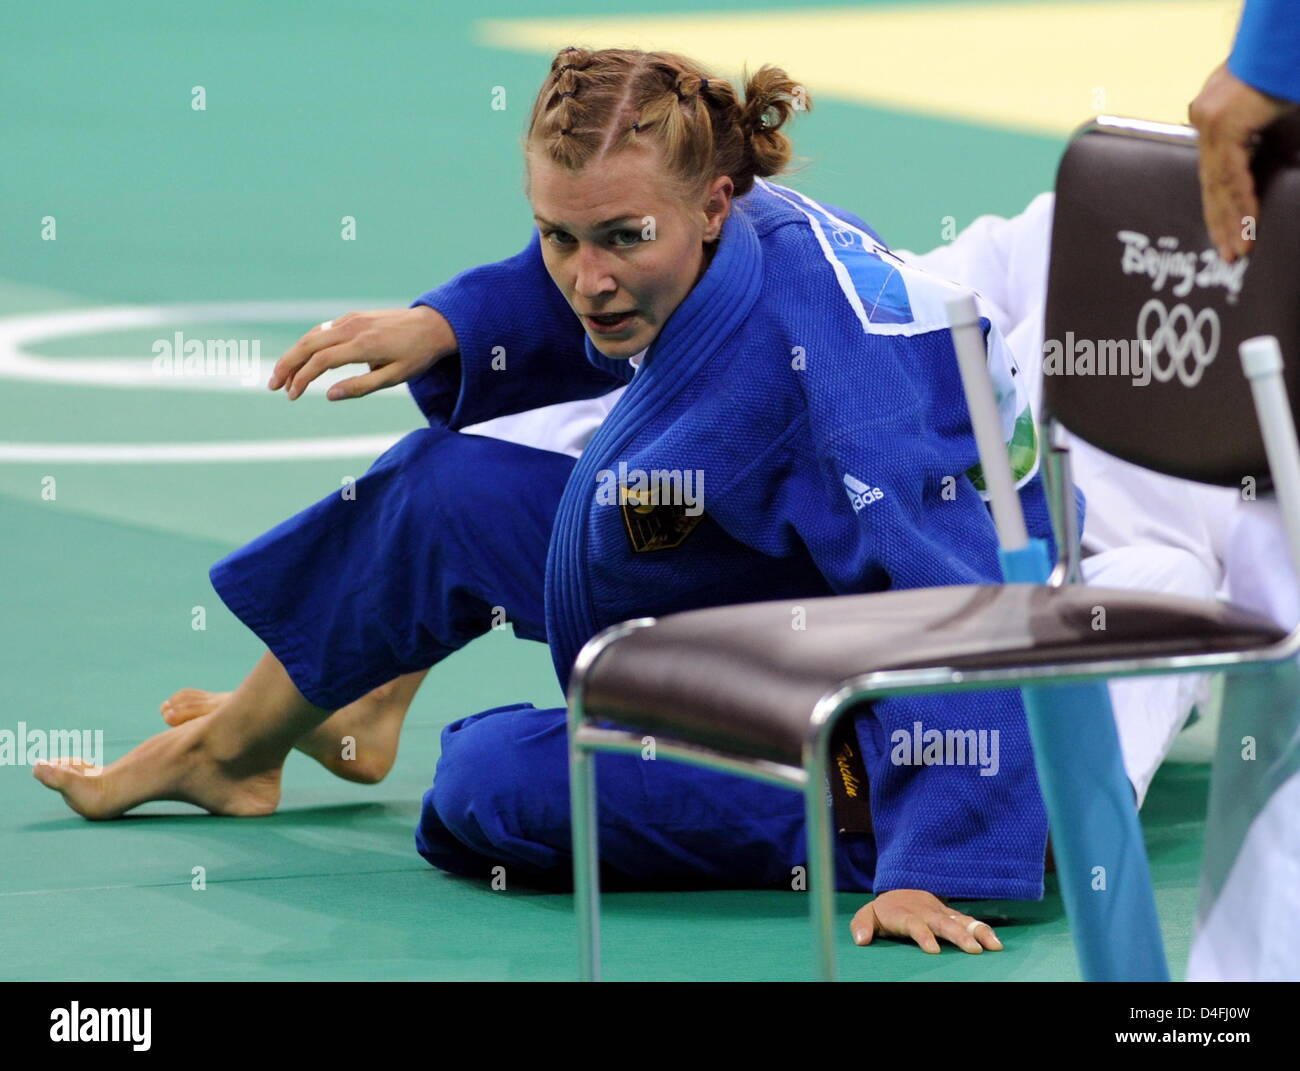 Michaela Baschin of Germany competes against Moussa (unseen) of Algeria in the first round in the 48kg category - Stock Image